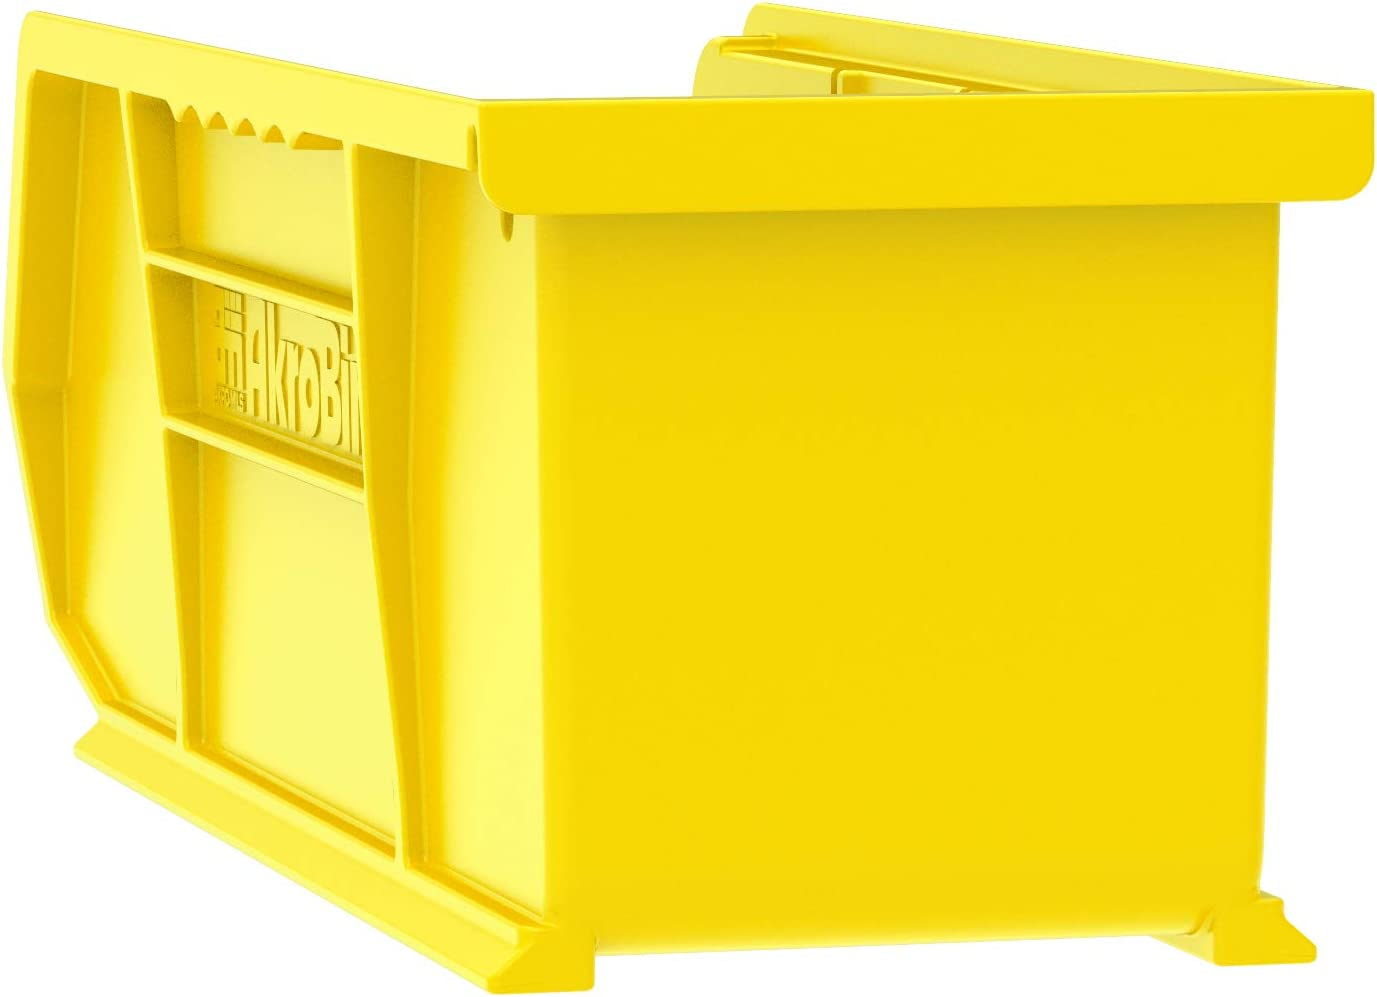 Stone 15-Inch by 5-Inch by 5-Inch Akro-Mils 30234 Plastic Storage Stacking Hanging Akro Bin 12-Pack